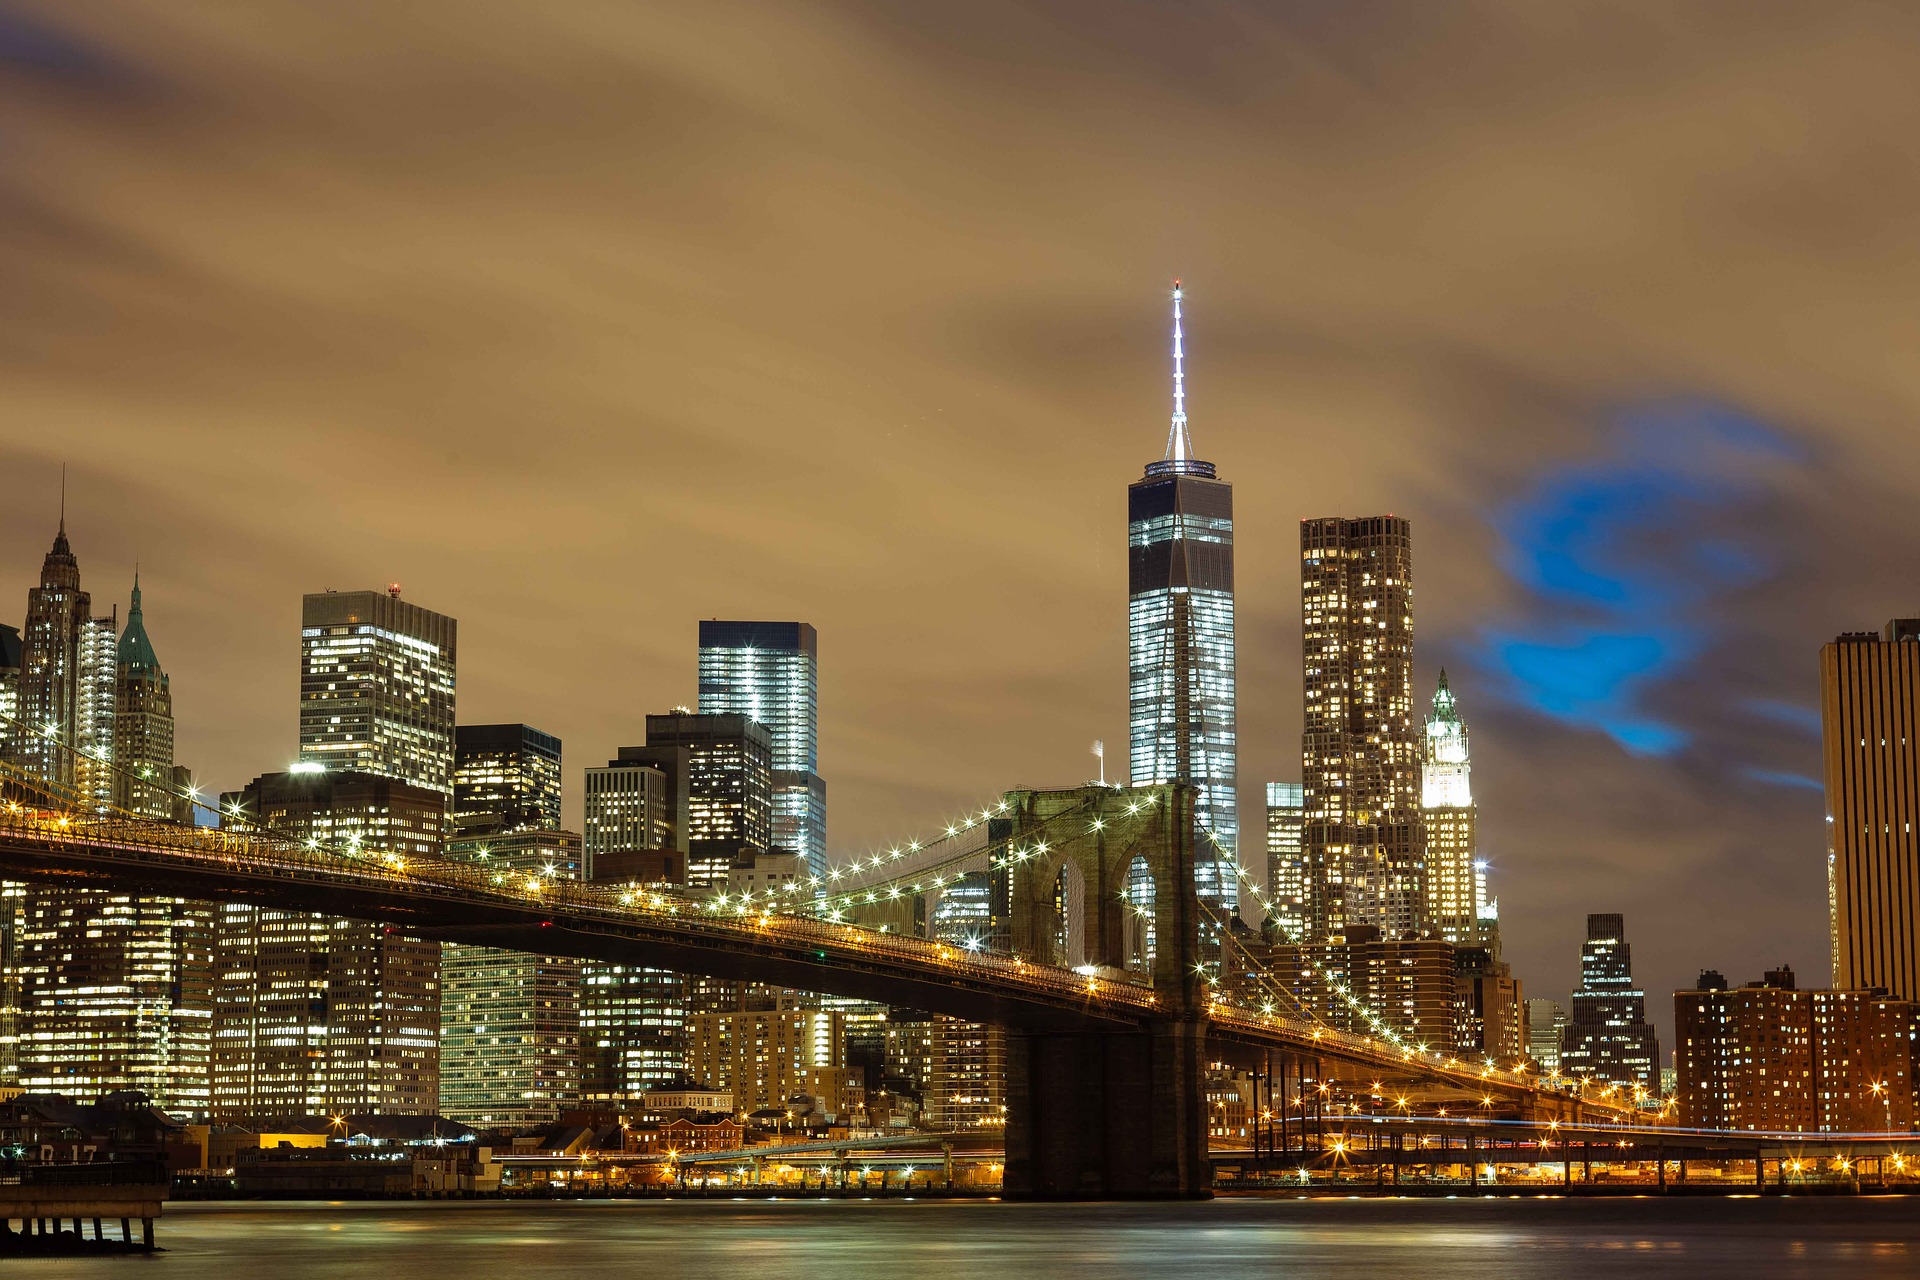 Brooklyn bridge in new york city widest for Best places to go in nyc at night